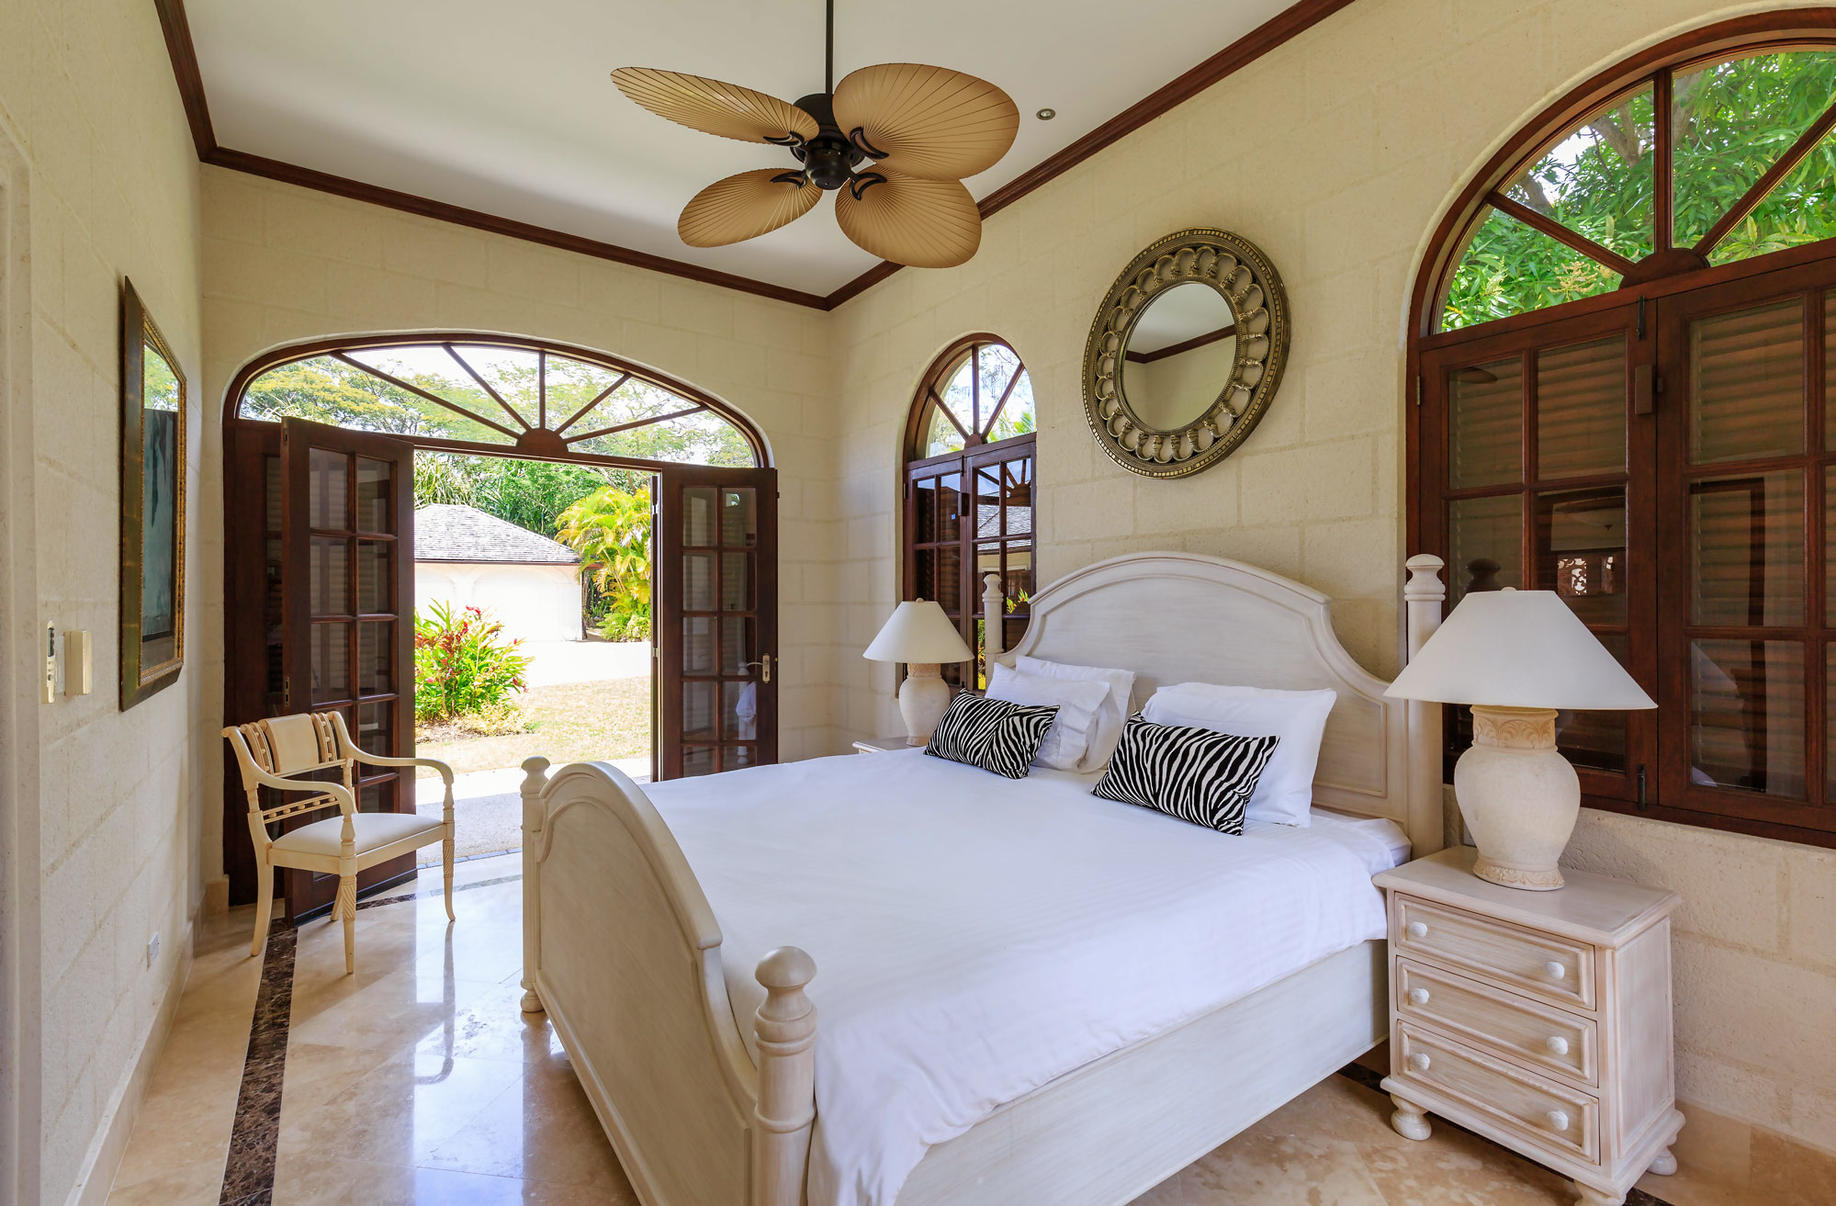 Barbados Villa Connections: Kailani Gallery 14